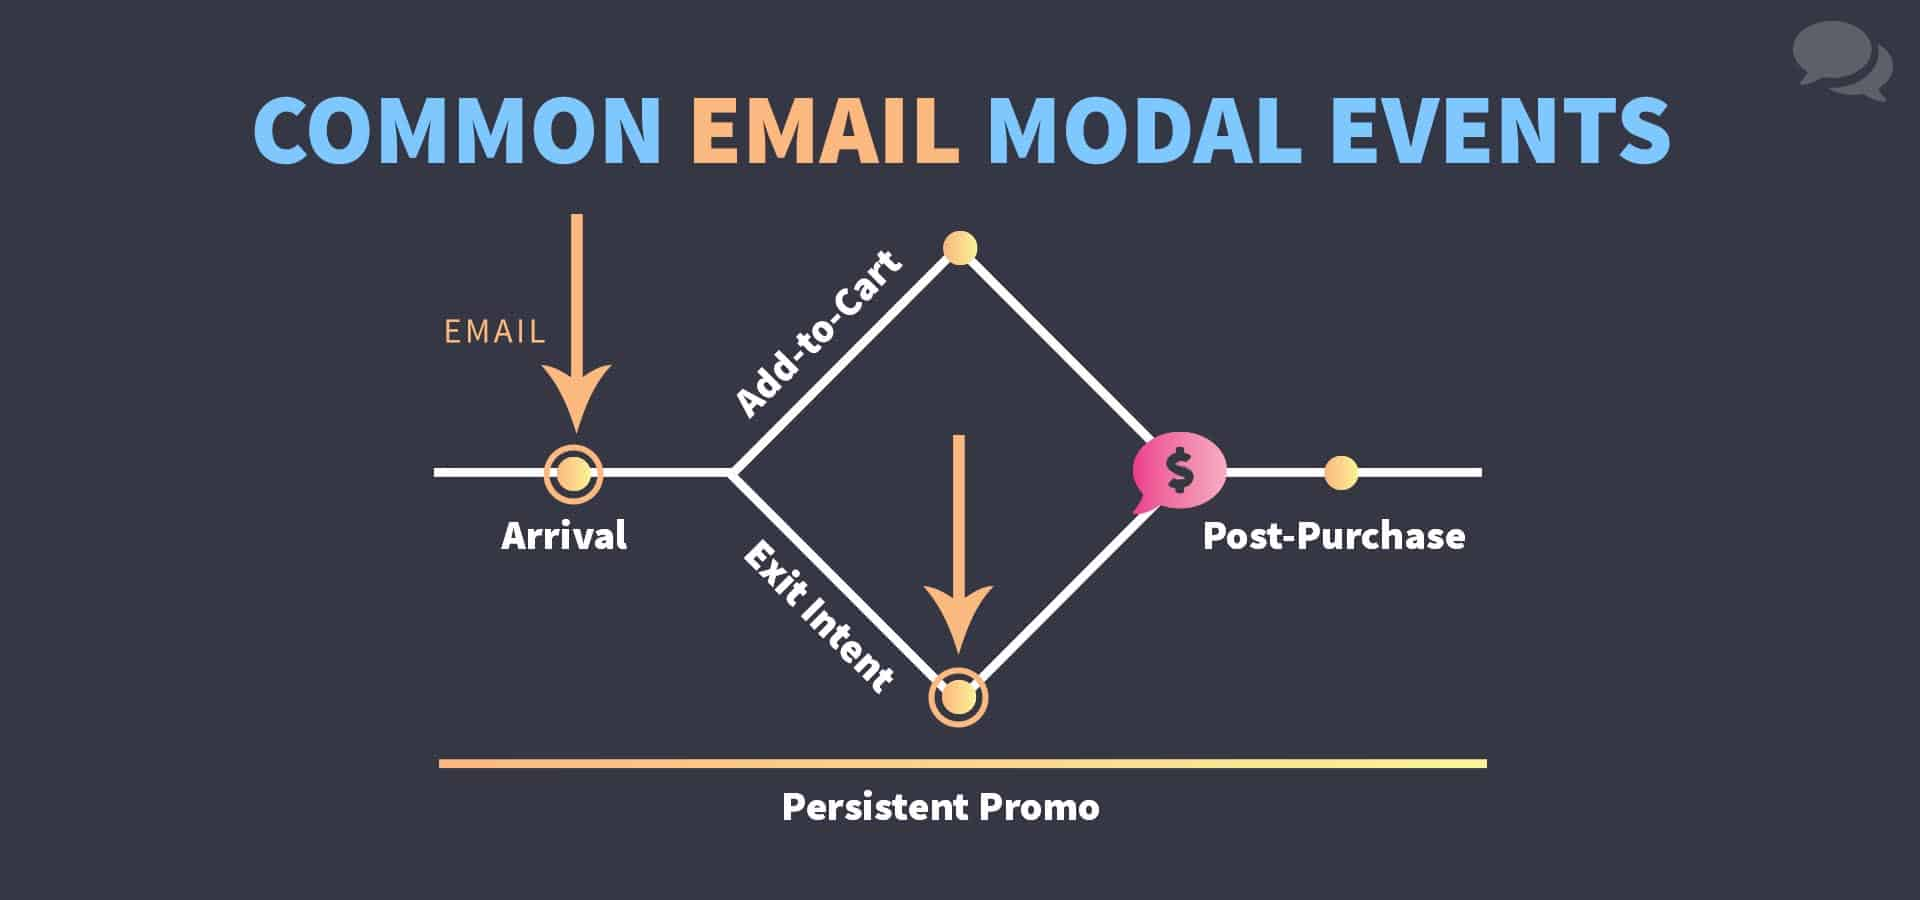 A diagram of where brands that use email capture modals tend to display them: upon arrival, and when exit intent is displayed.